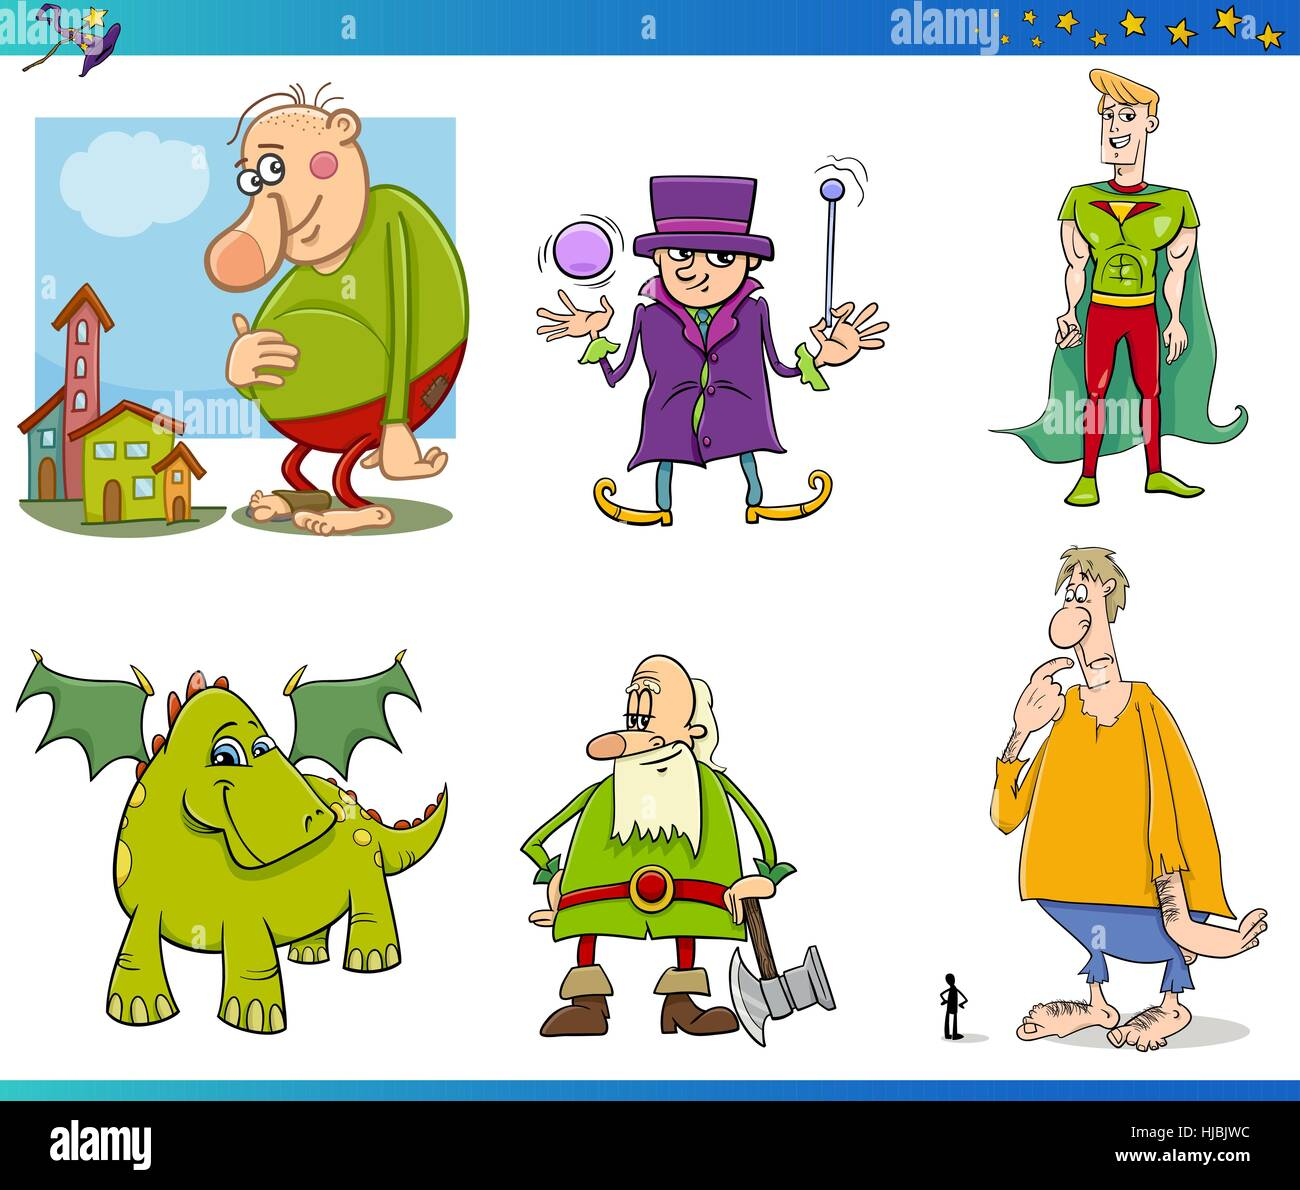 Cartoon Illustrations of Fantasy or Fairy Tale Characters Set Stock Vector